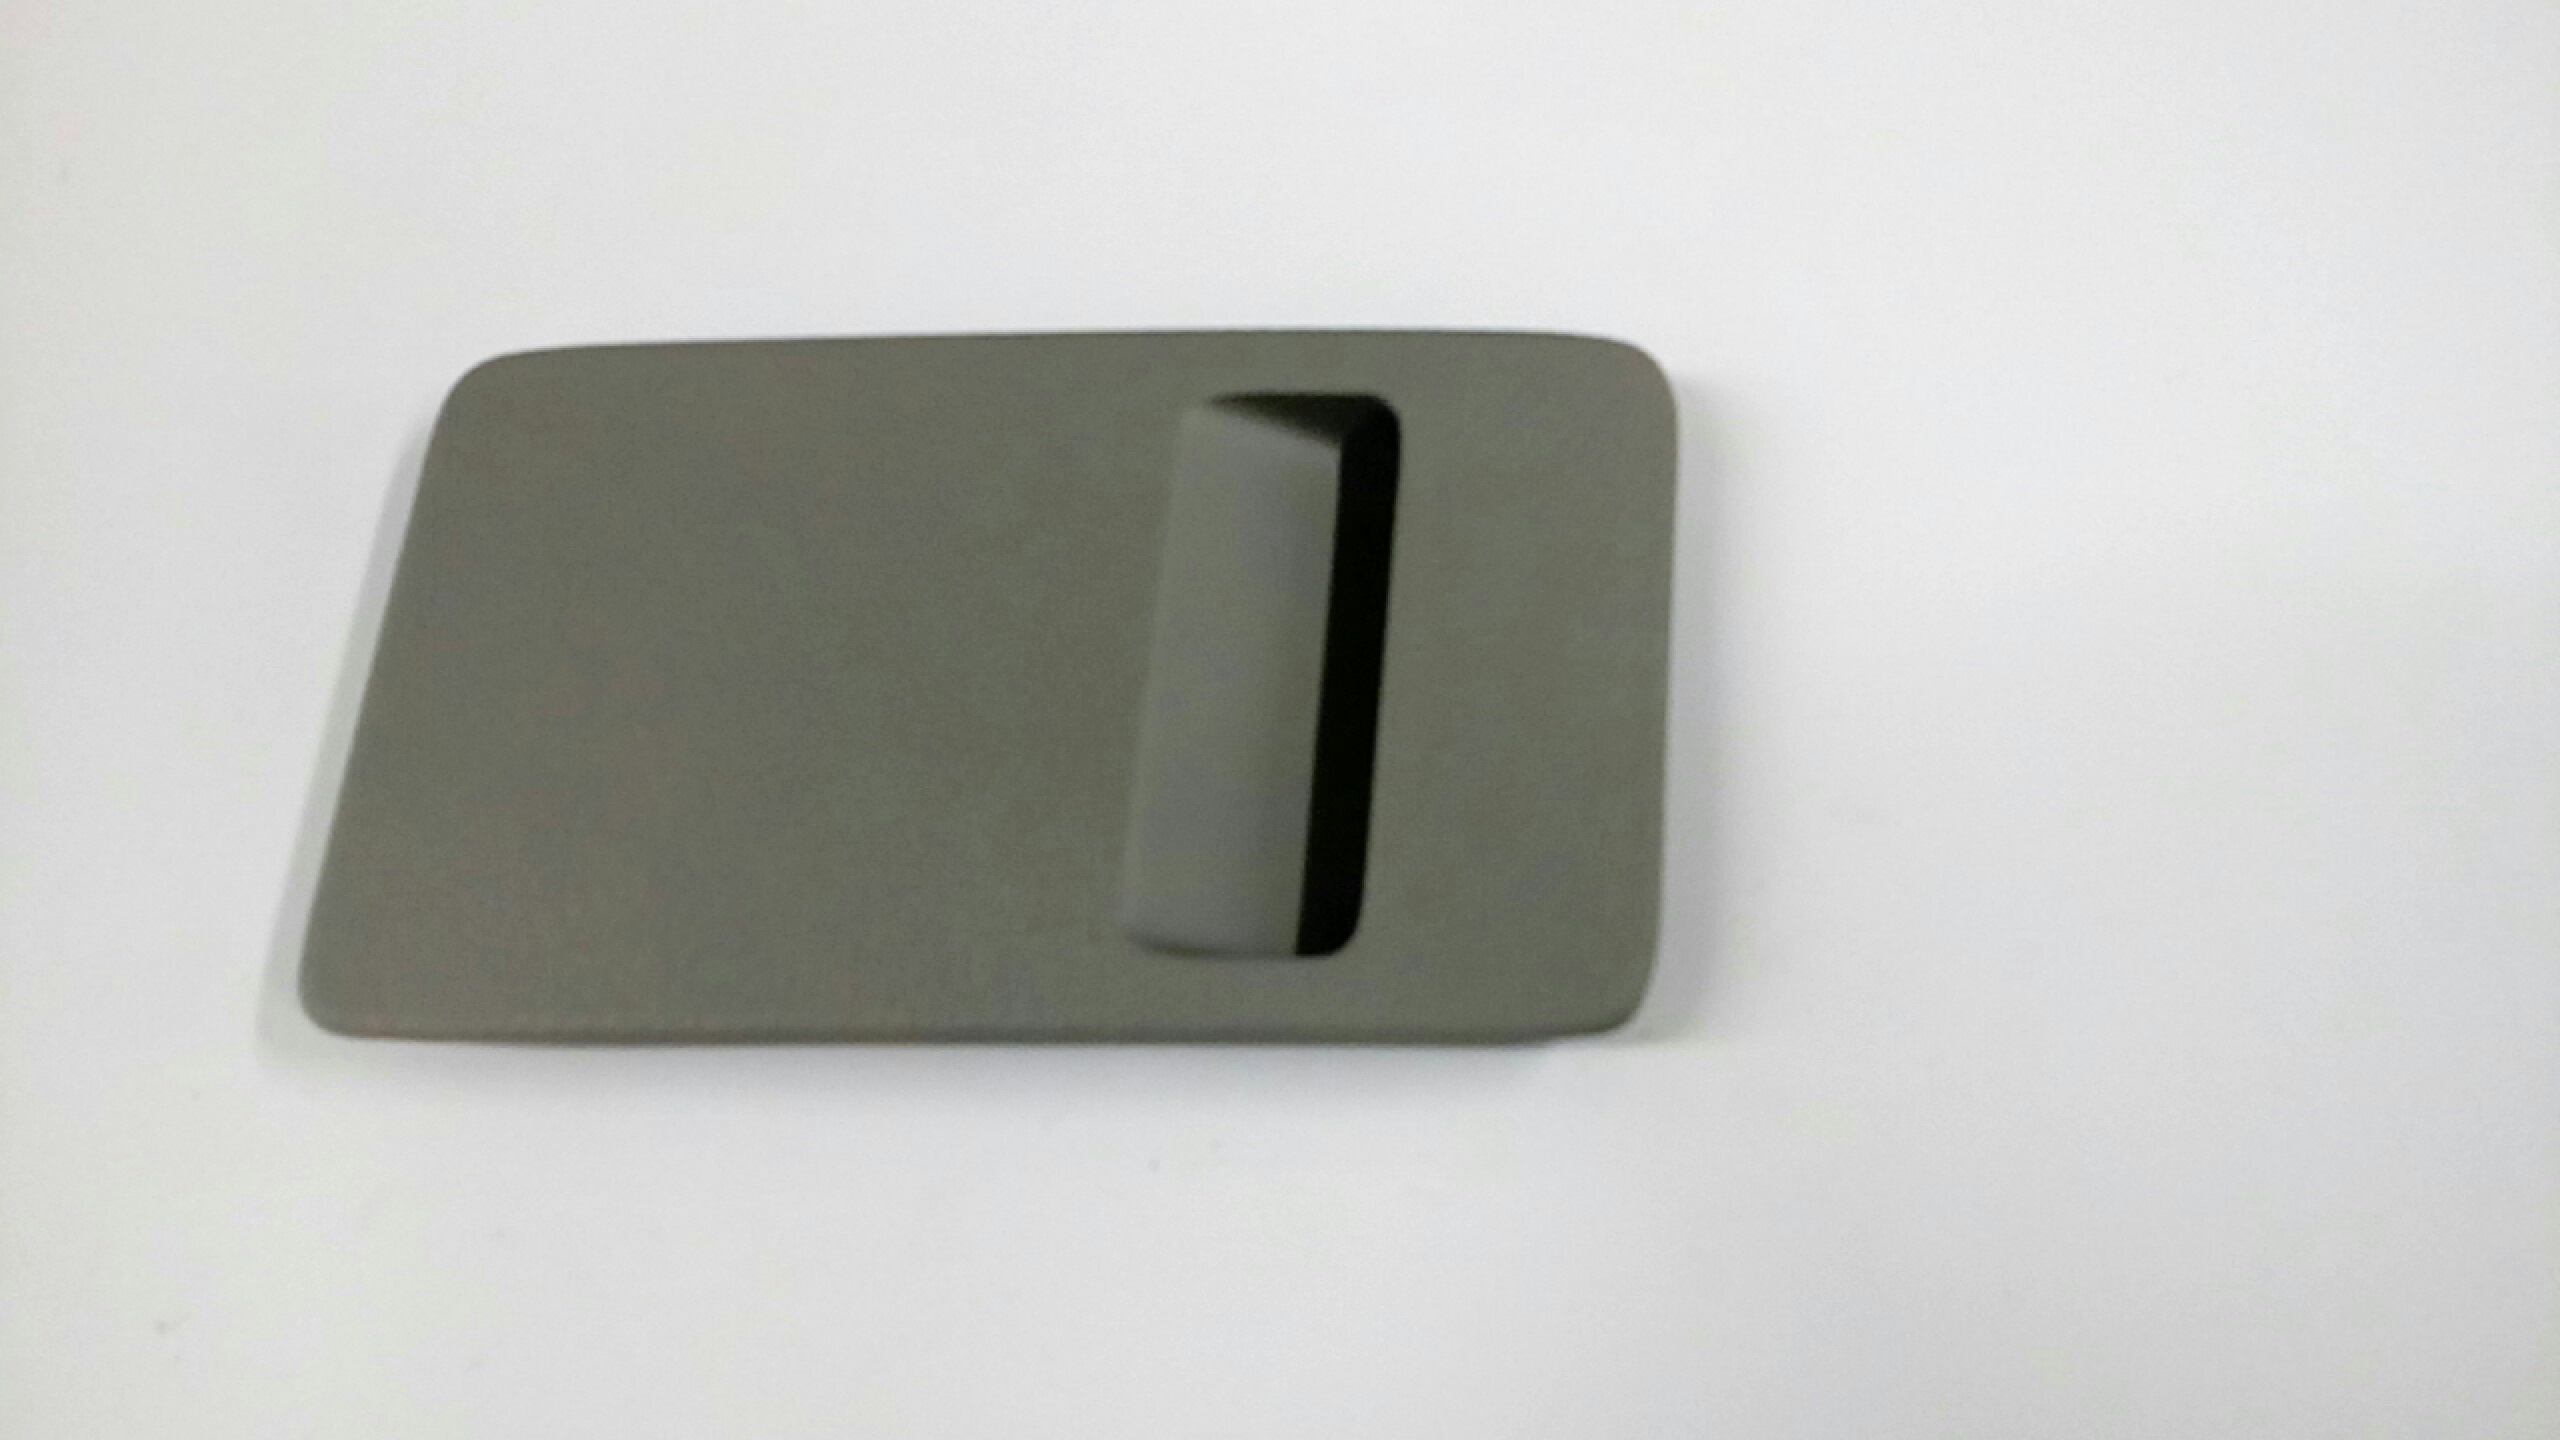 Subaru Forester Fuse Box Cover  Grey